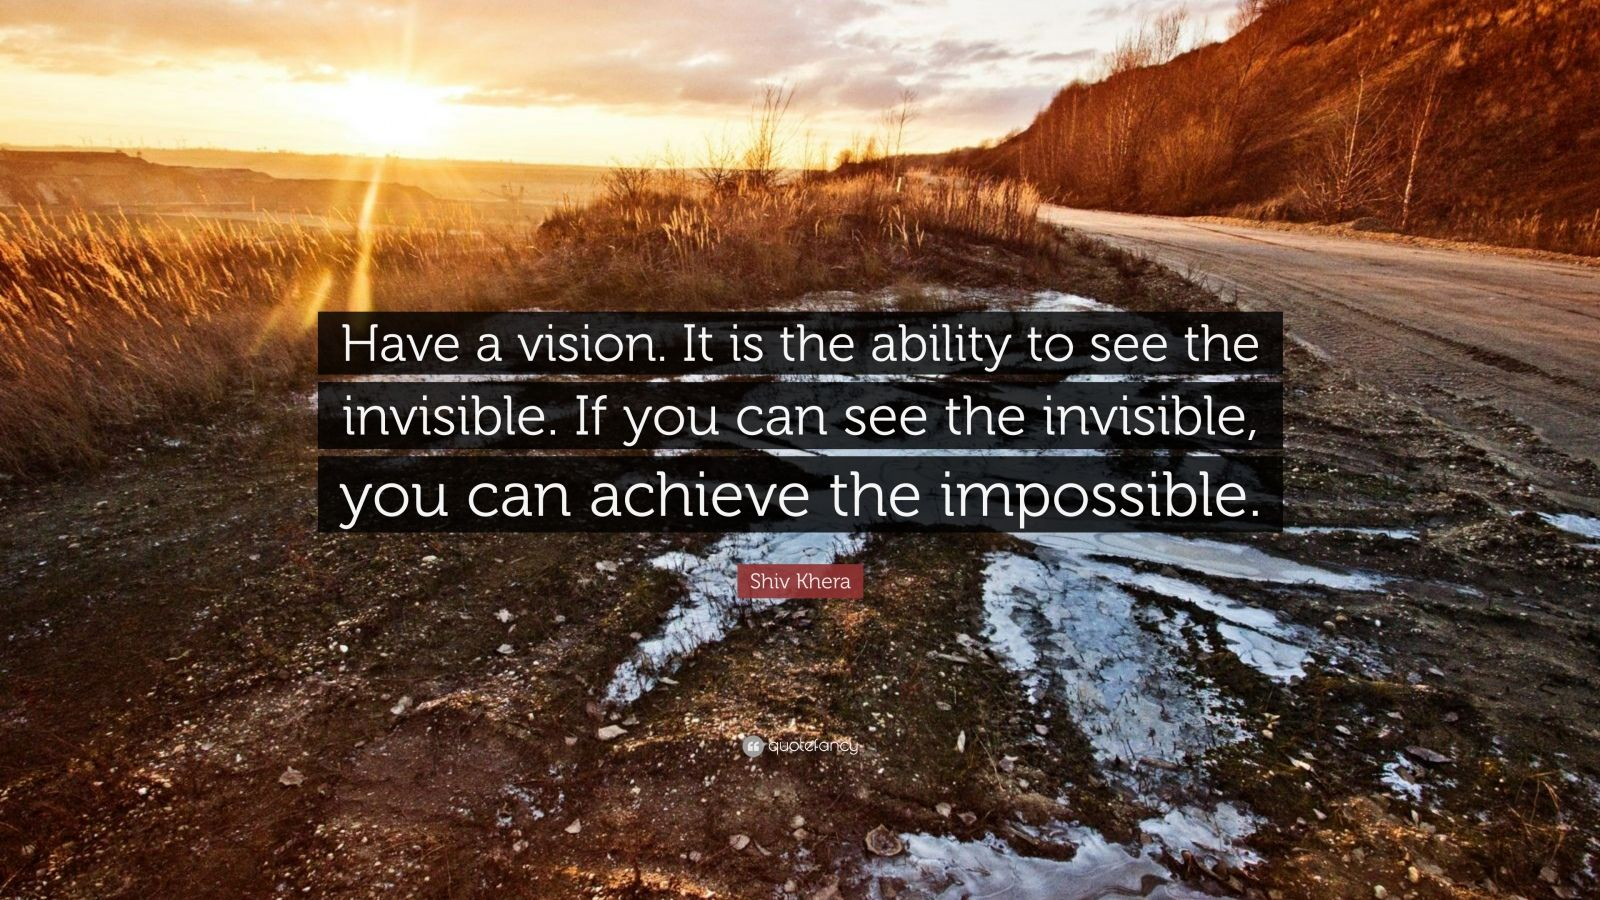 "Shiv Khera Quote: ""Have a vision. It is the ability to see the invisible. If you can see the invisible, you can achieve the impossible."""